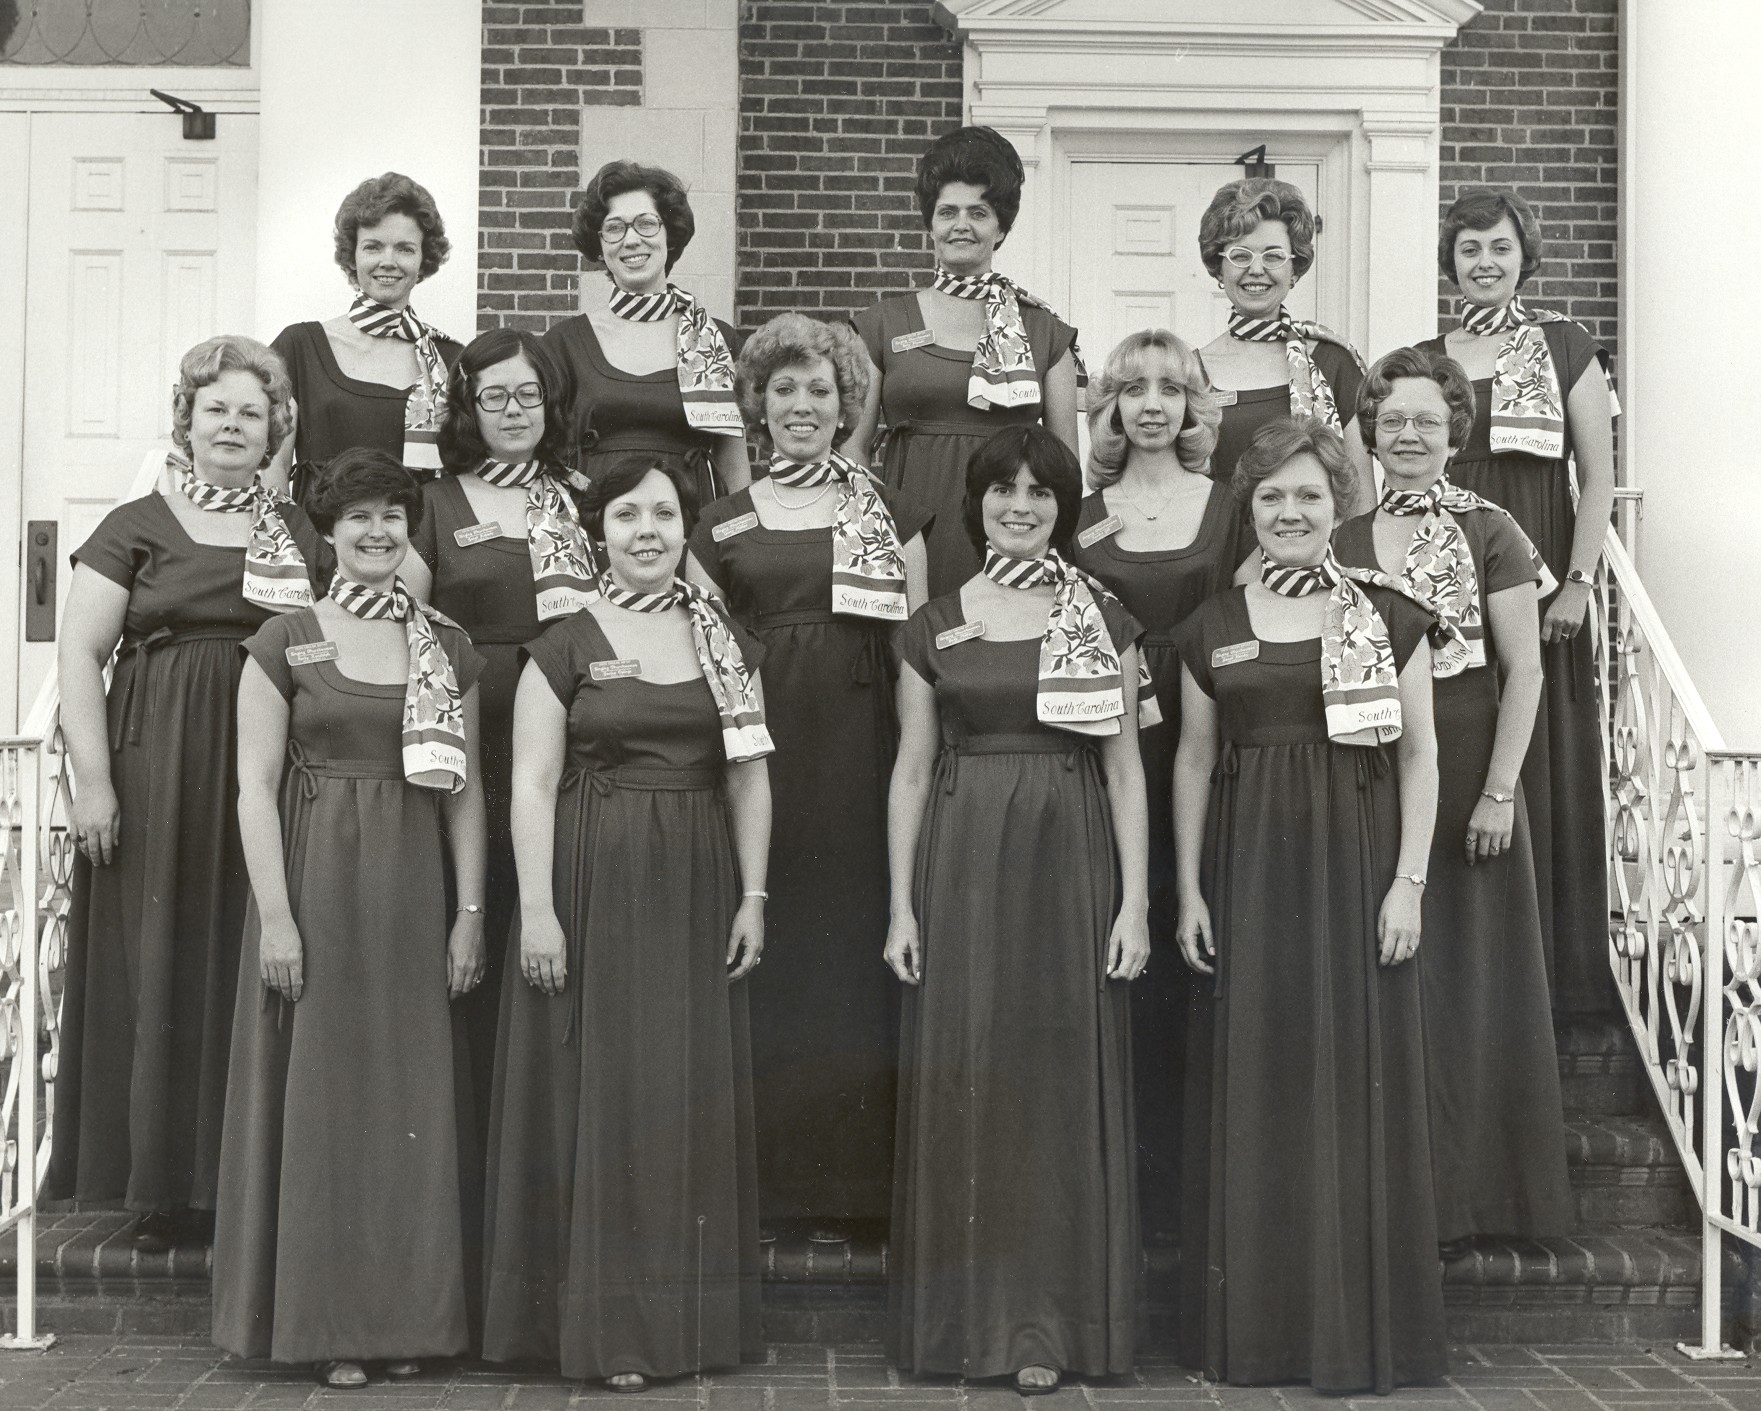 Original Singing Churchwomen - 1970s